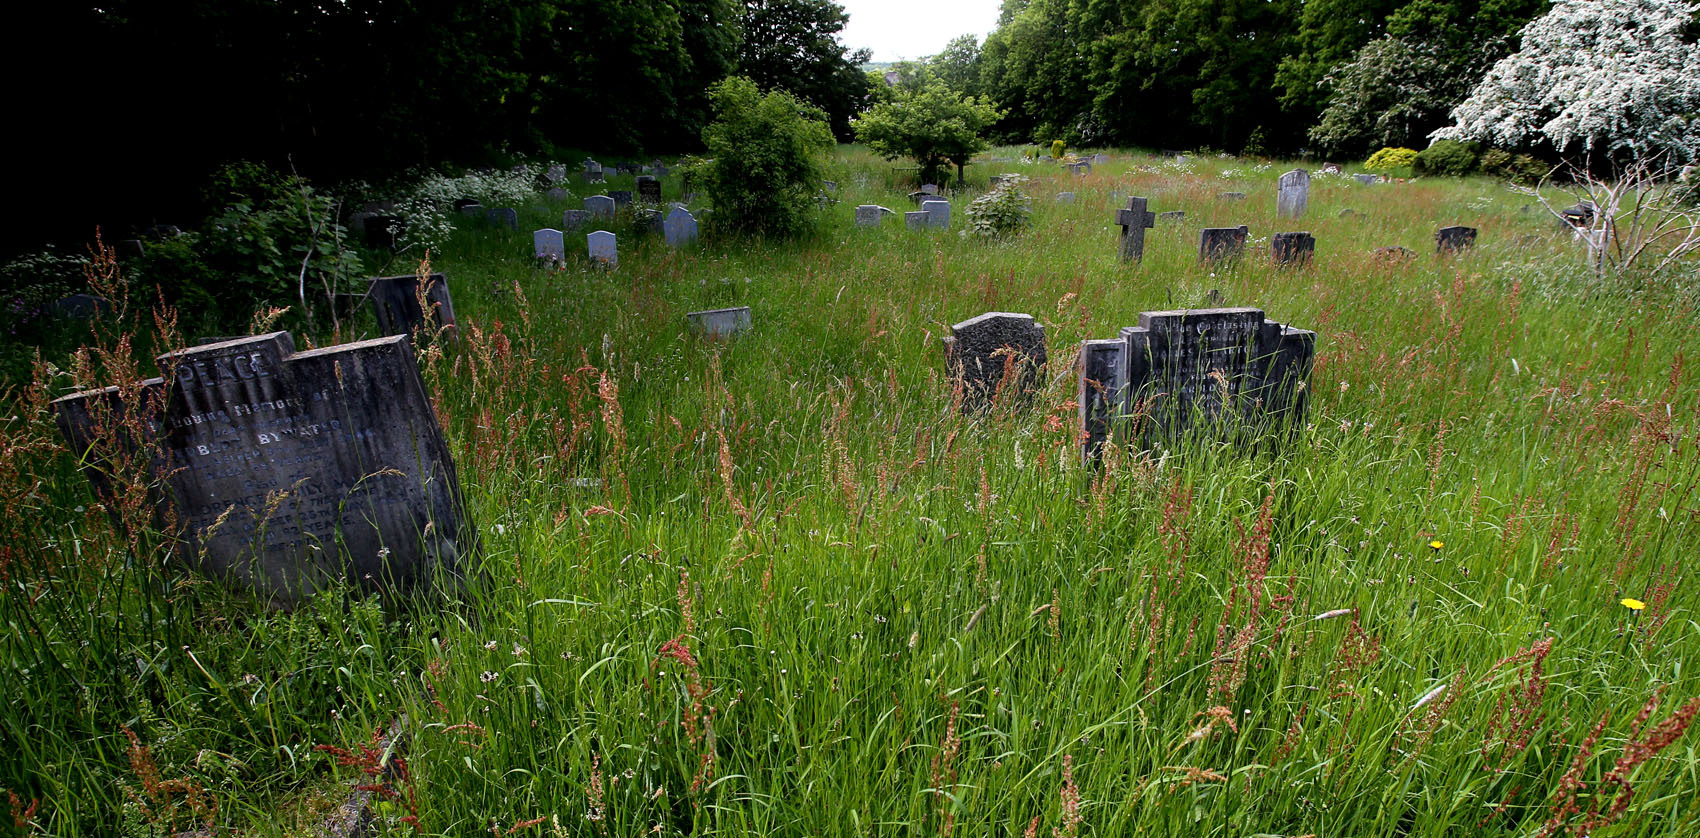 Enfield Council has taken over the management of the burial service